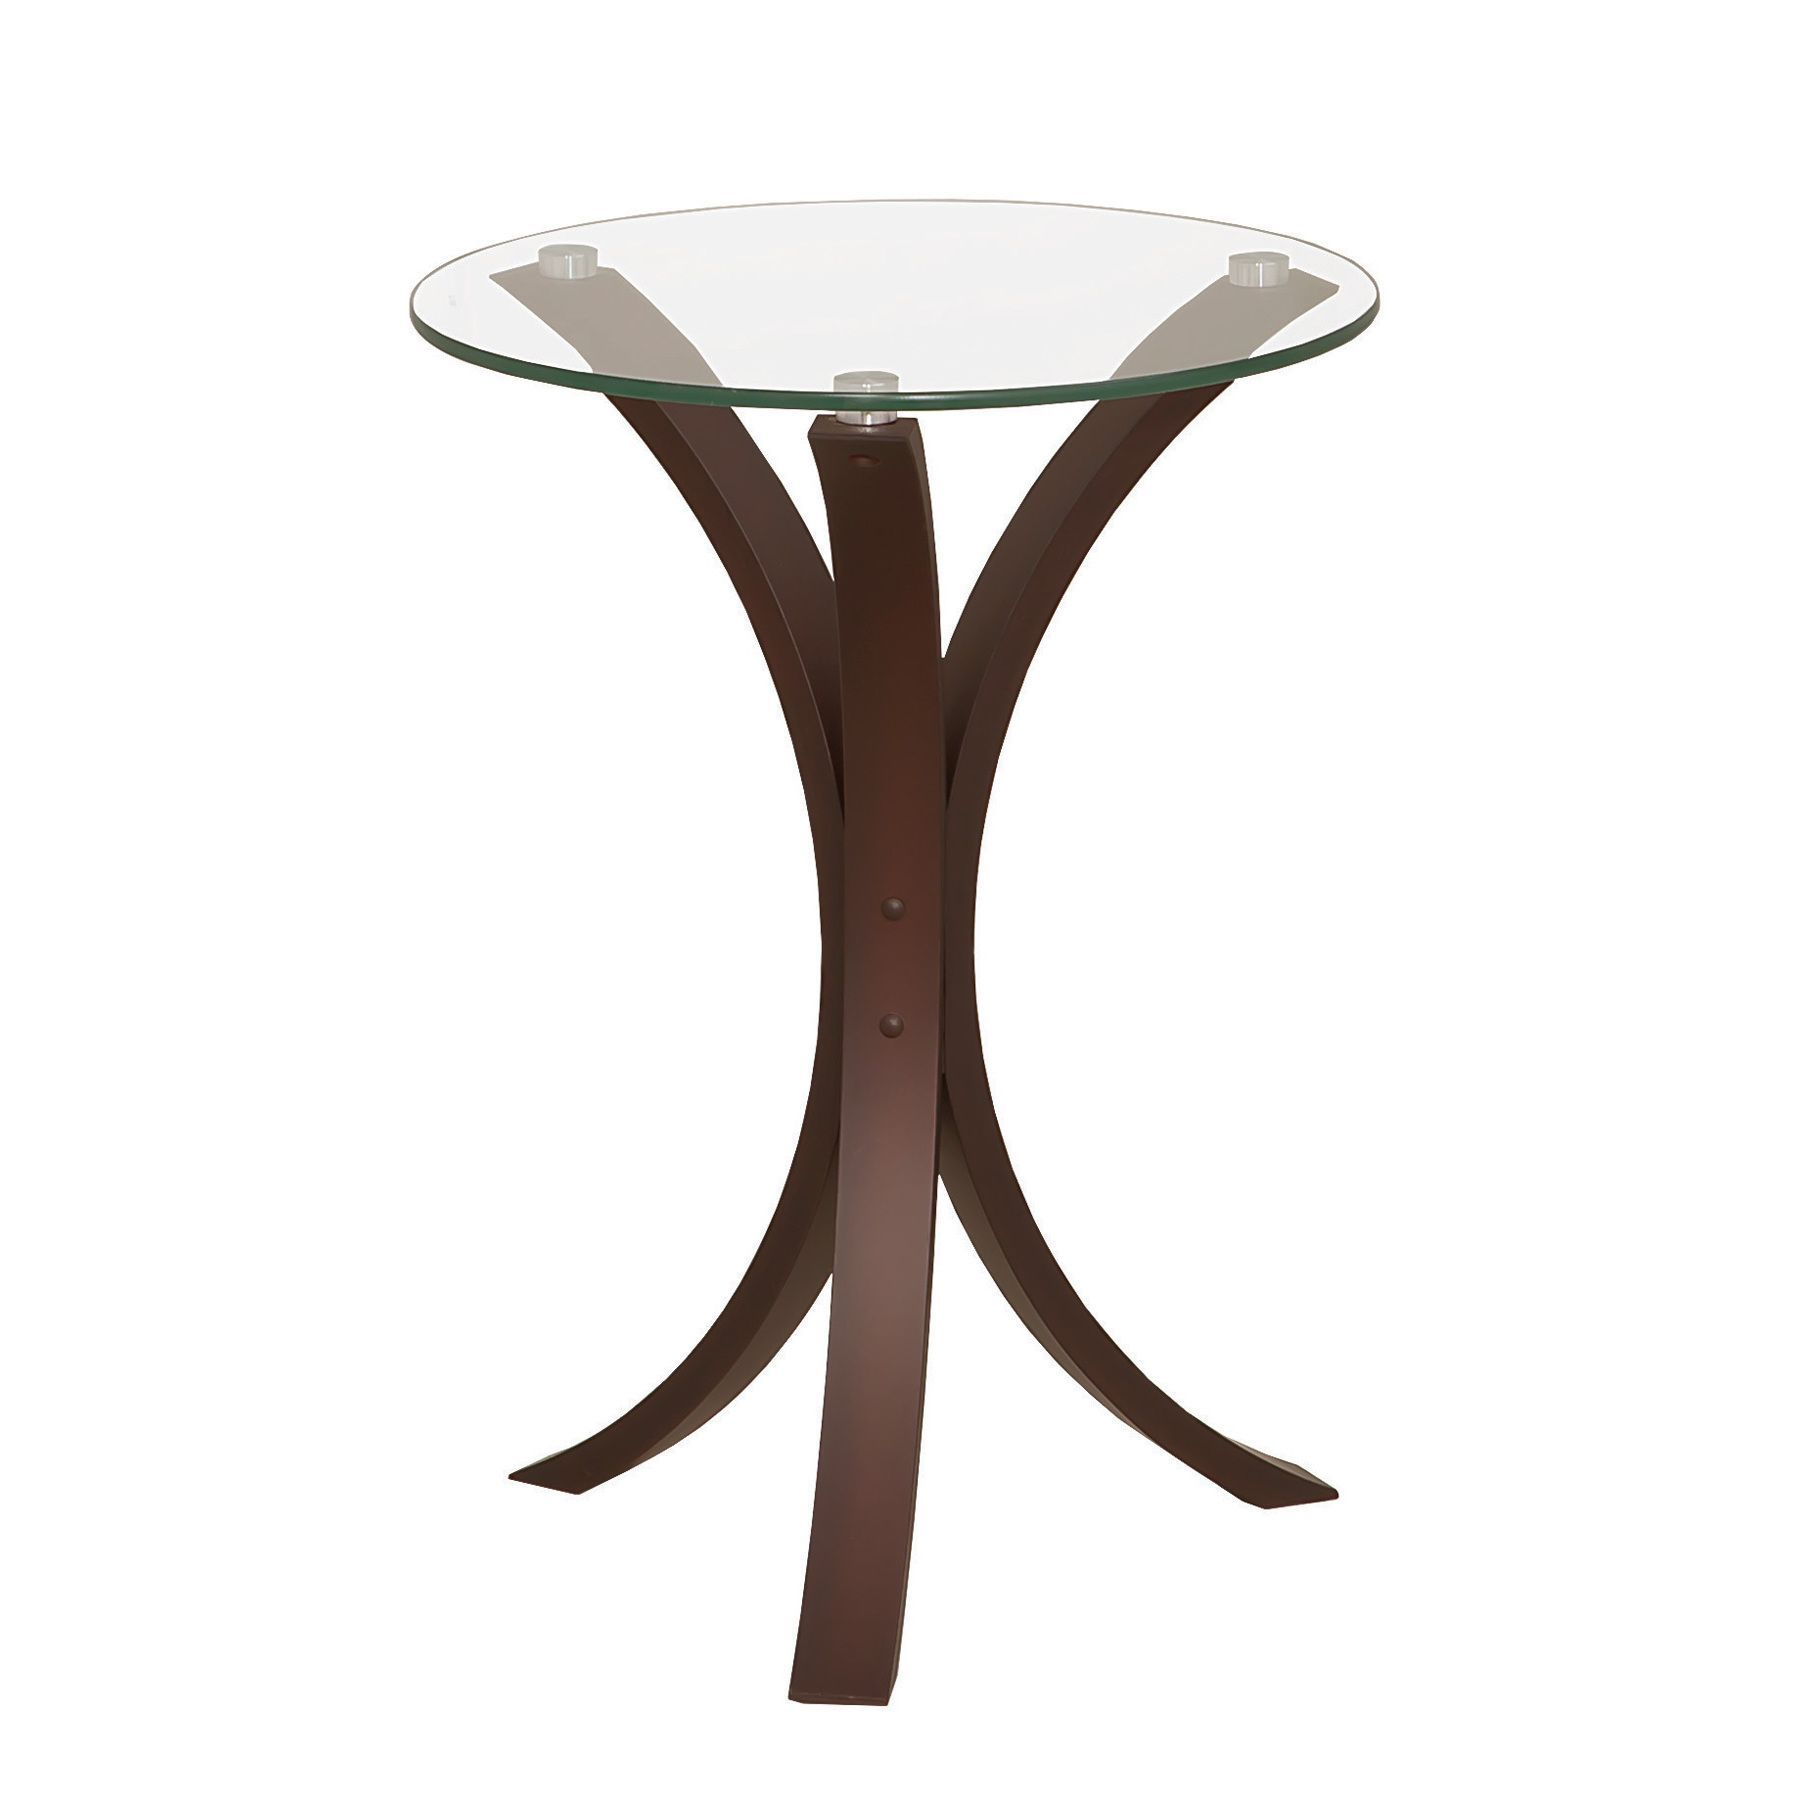 Our Best Living Room Furniture Deals Tempered Glass Table Top Glass Top Accent Table Glass Table